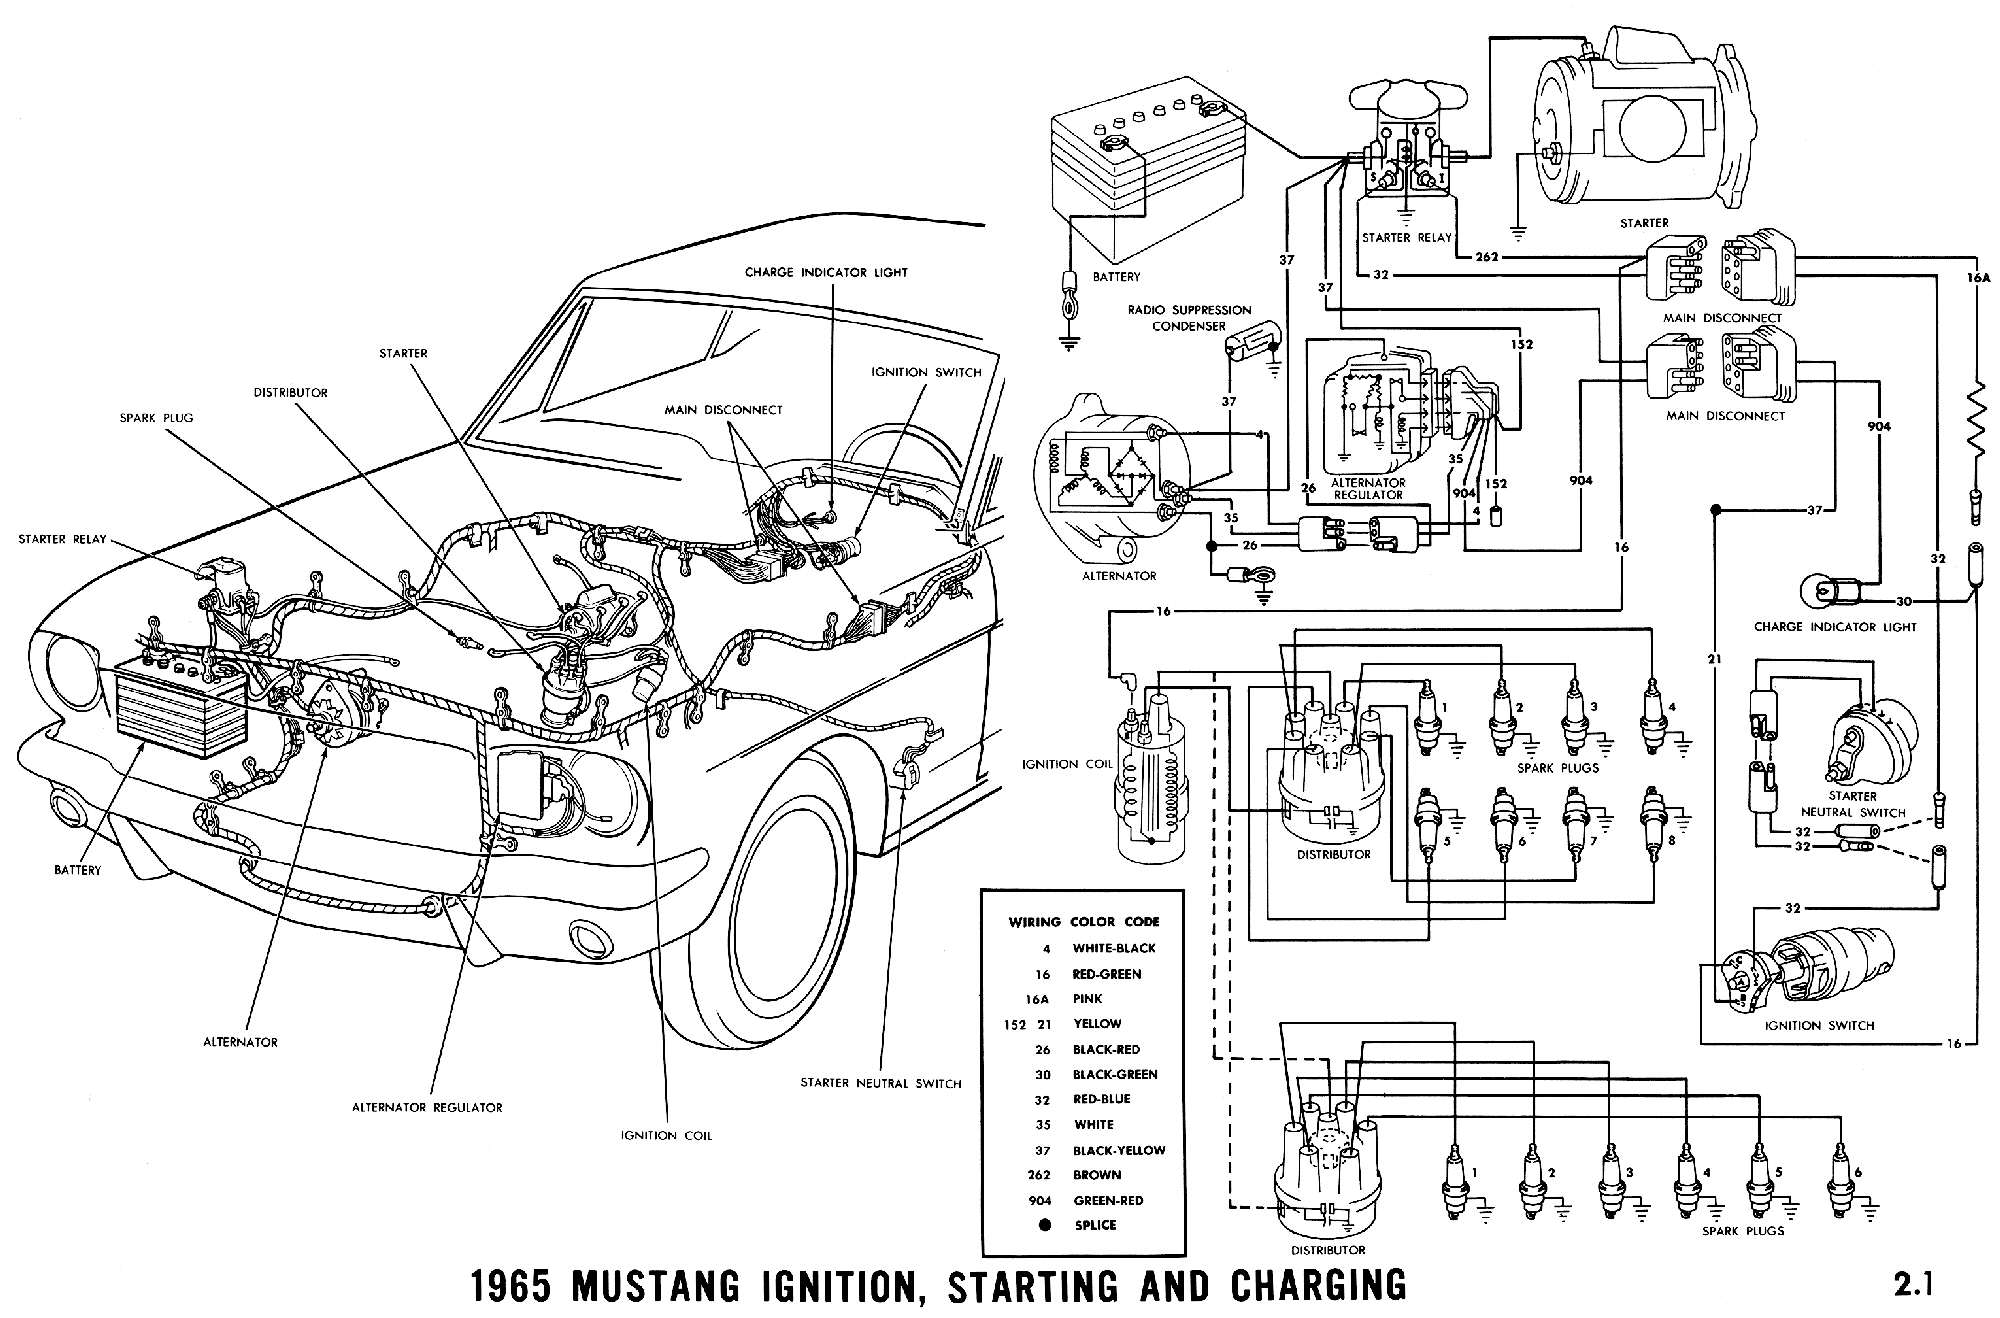 1965c 1965 mustang wiring diagrams average joe restoration 66 mustang ignition wiring diagram at soozxer.org